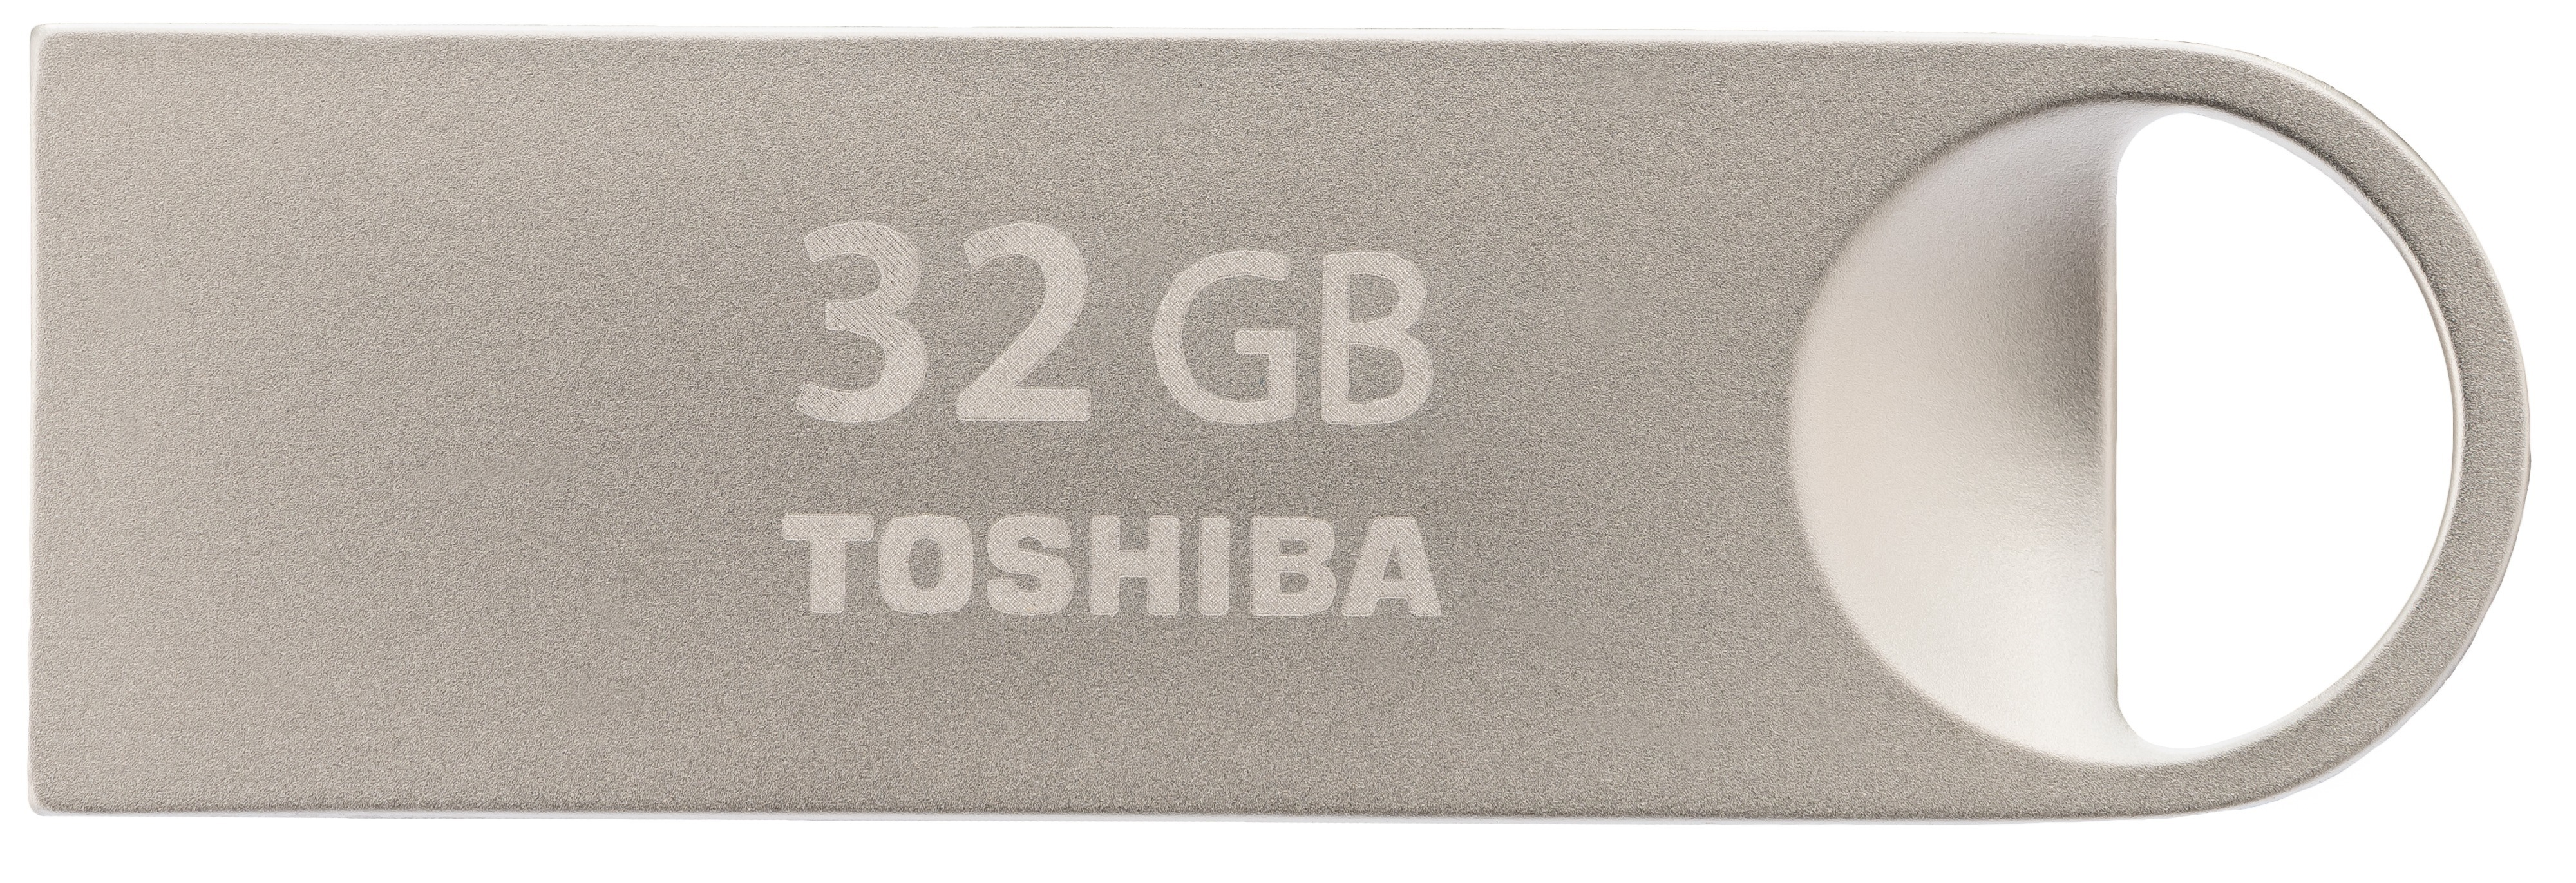 Toshiba usb sticks TransMemory U401 32GB USB 2.0 zilver